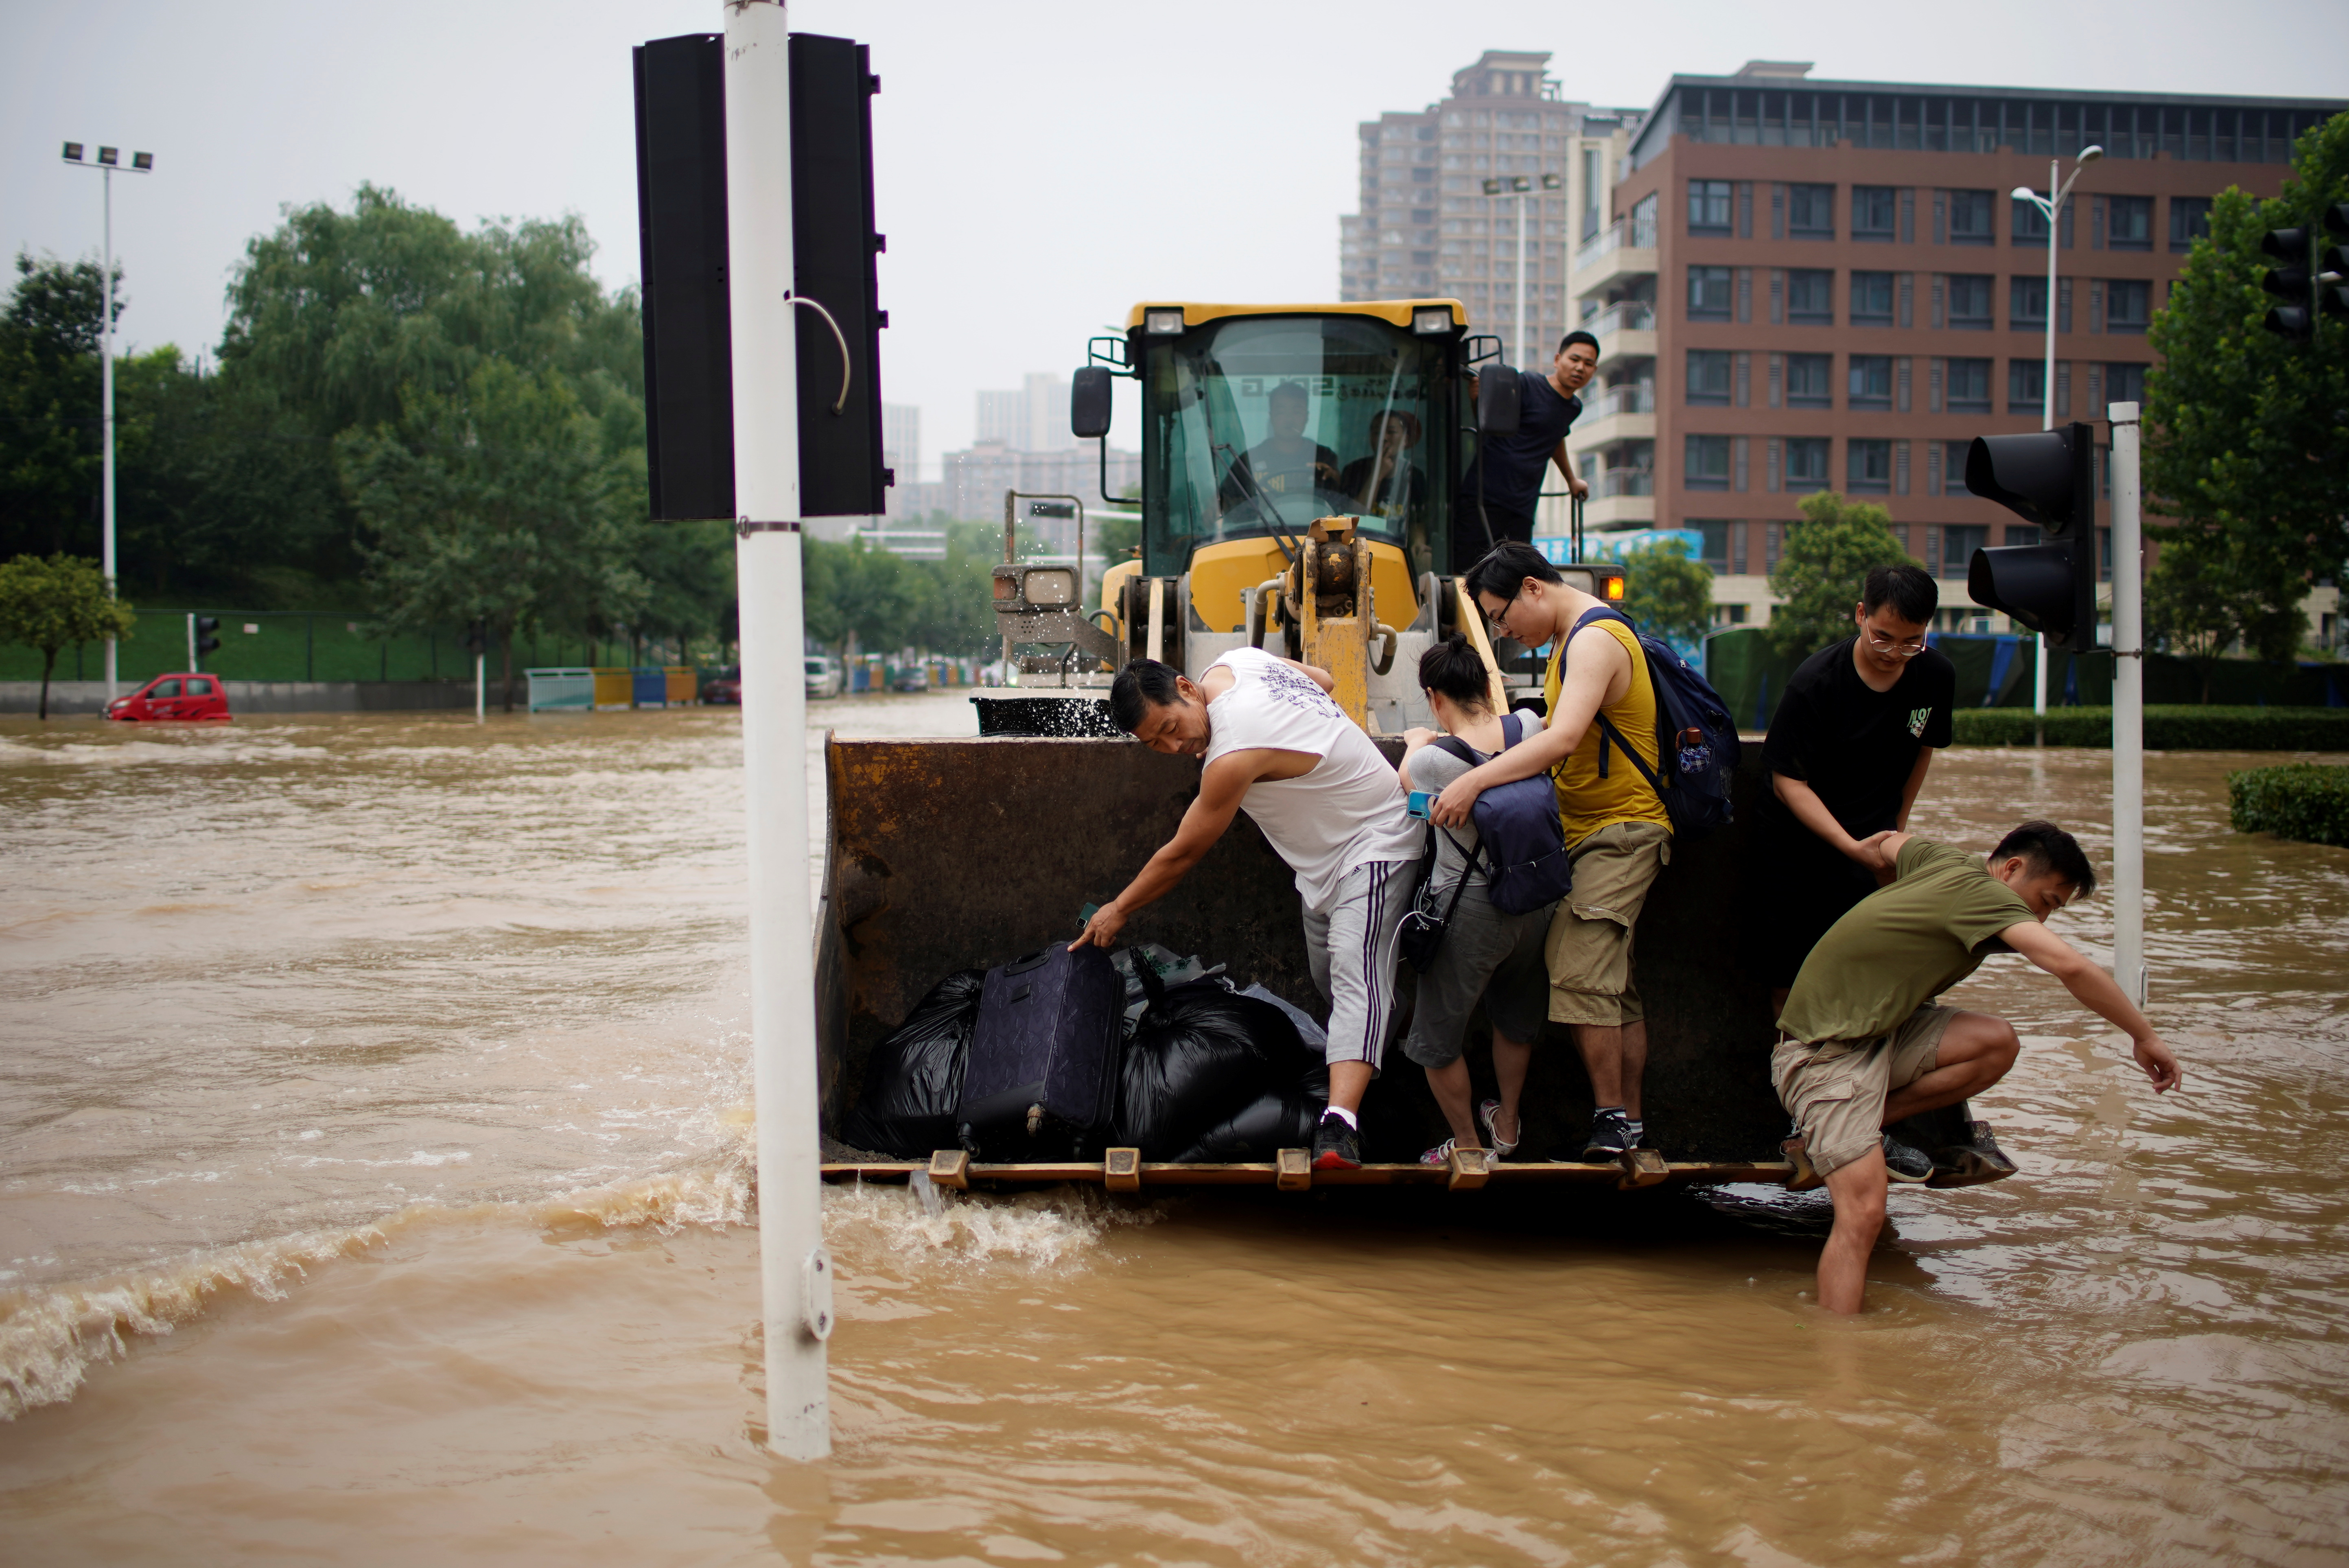 People ride on a front loader as they make their way through a flooded road following heavy rainfall in Zhengzhou, Henan province, China July 23, 2021. REUTERS/Aly Song